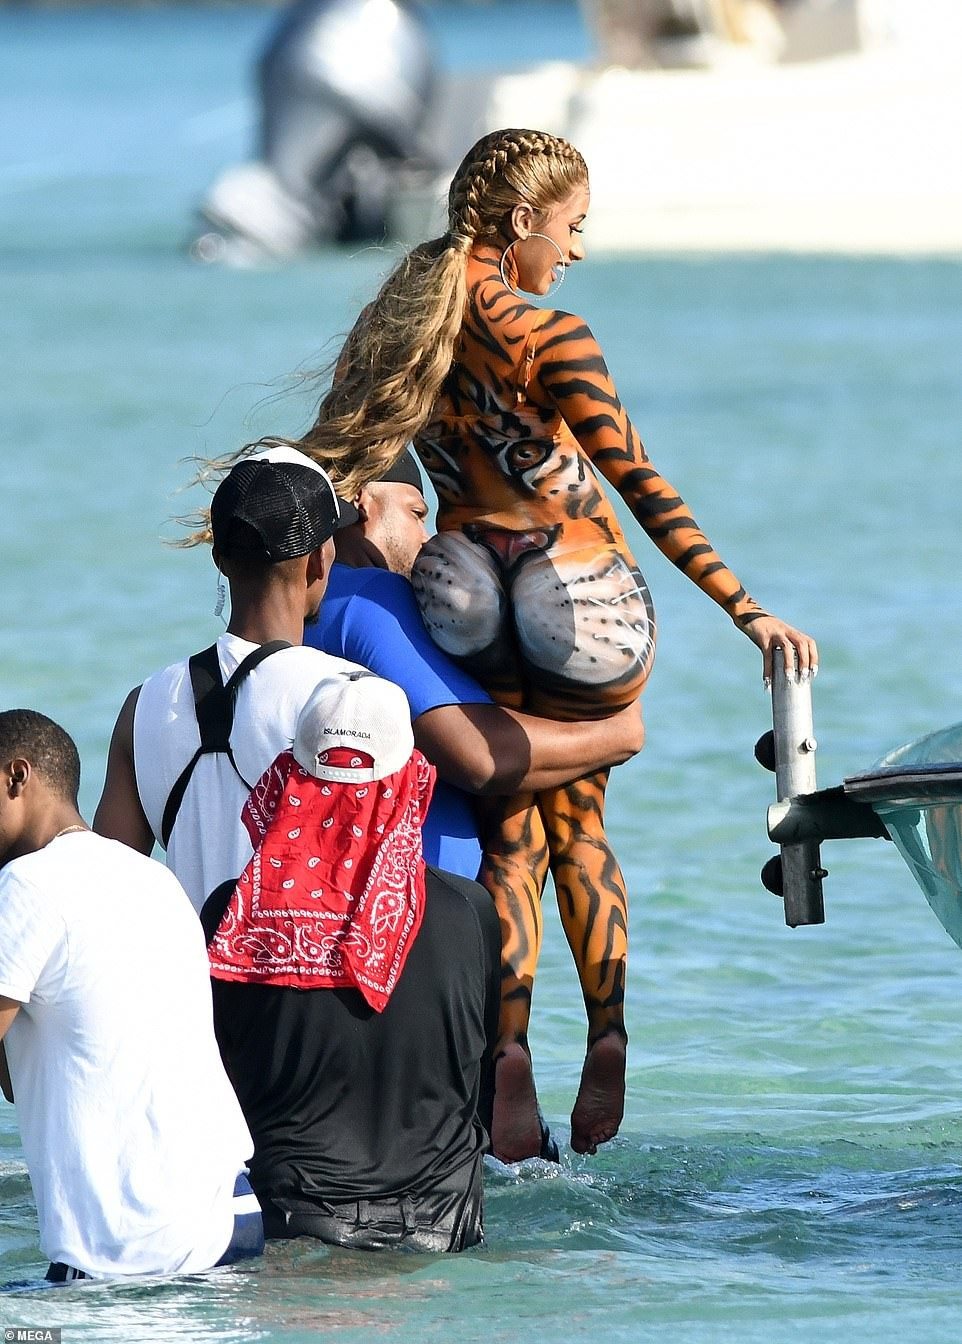 Cardi B twerks on Miami beach in tiger costume after failing to appear in court over a fight at New York club (Photos)